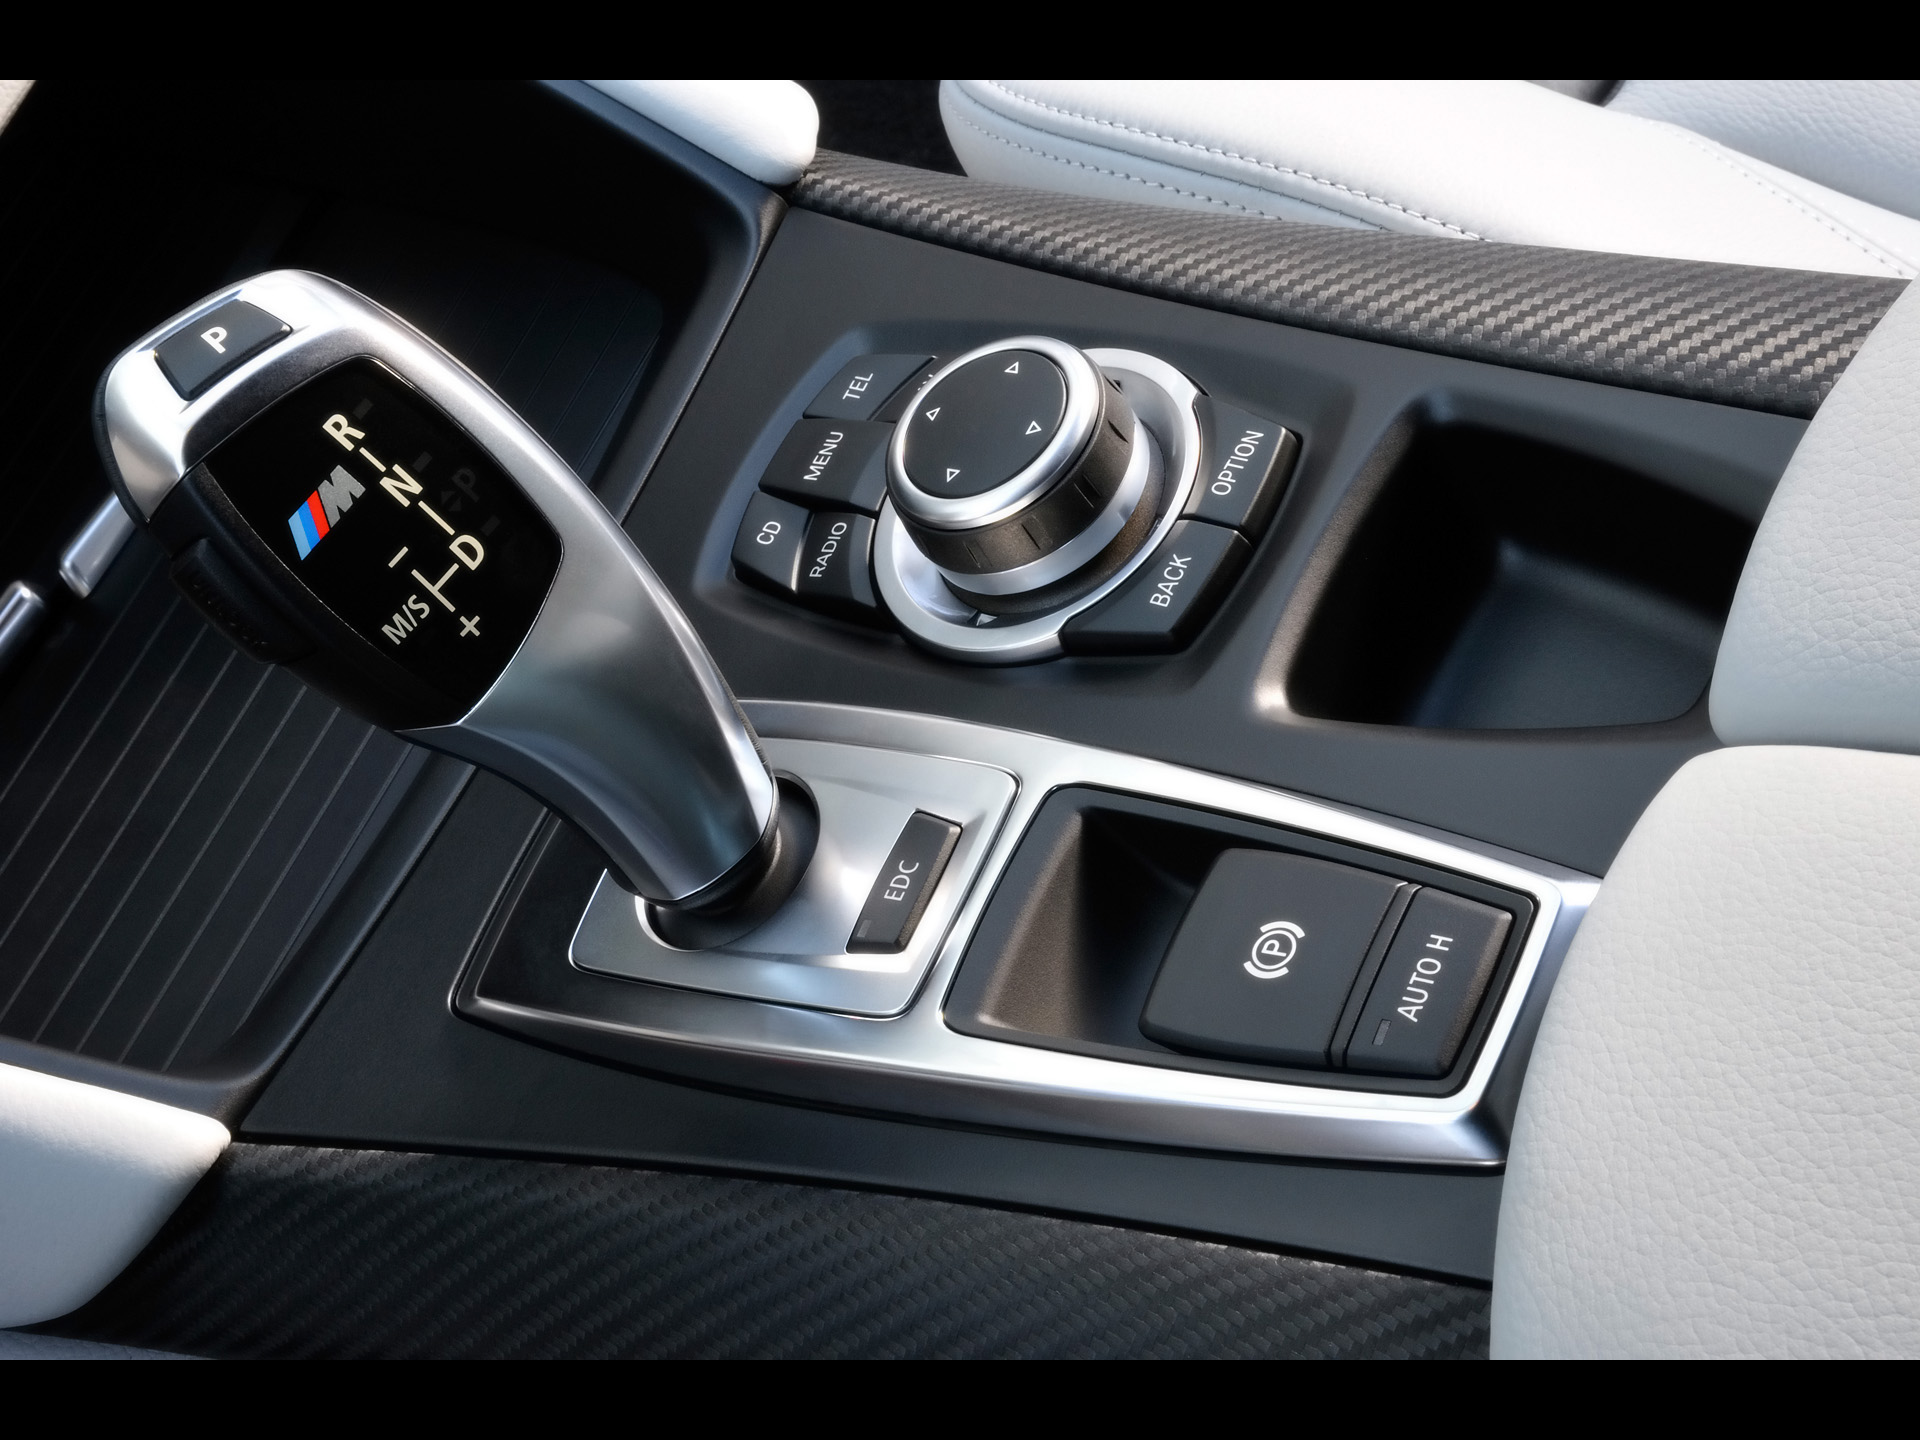 1920x1440 BMW X6 M gearshift desktop wallpapers and stock photos